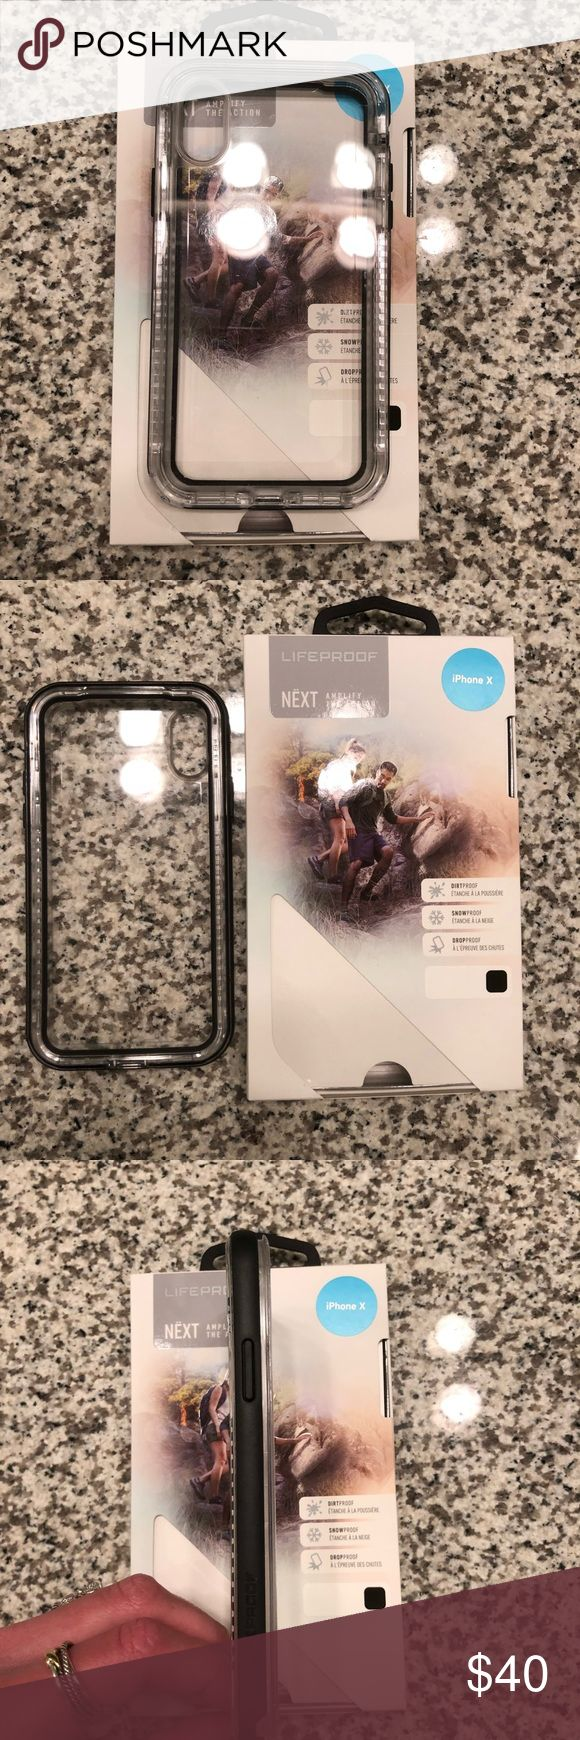 iPhone X life proof case iPhone X life proof case like brand new only worn for a few days in great condition can hardly tell signs of wear 110% authentic Accessories Phone Cases